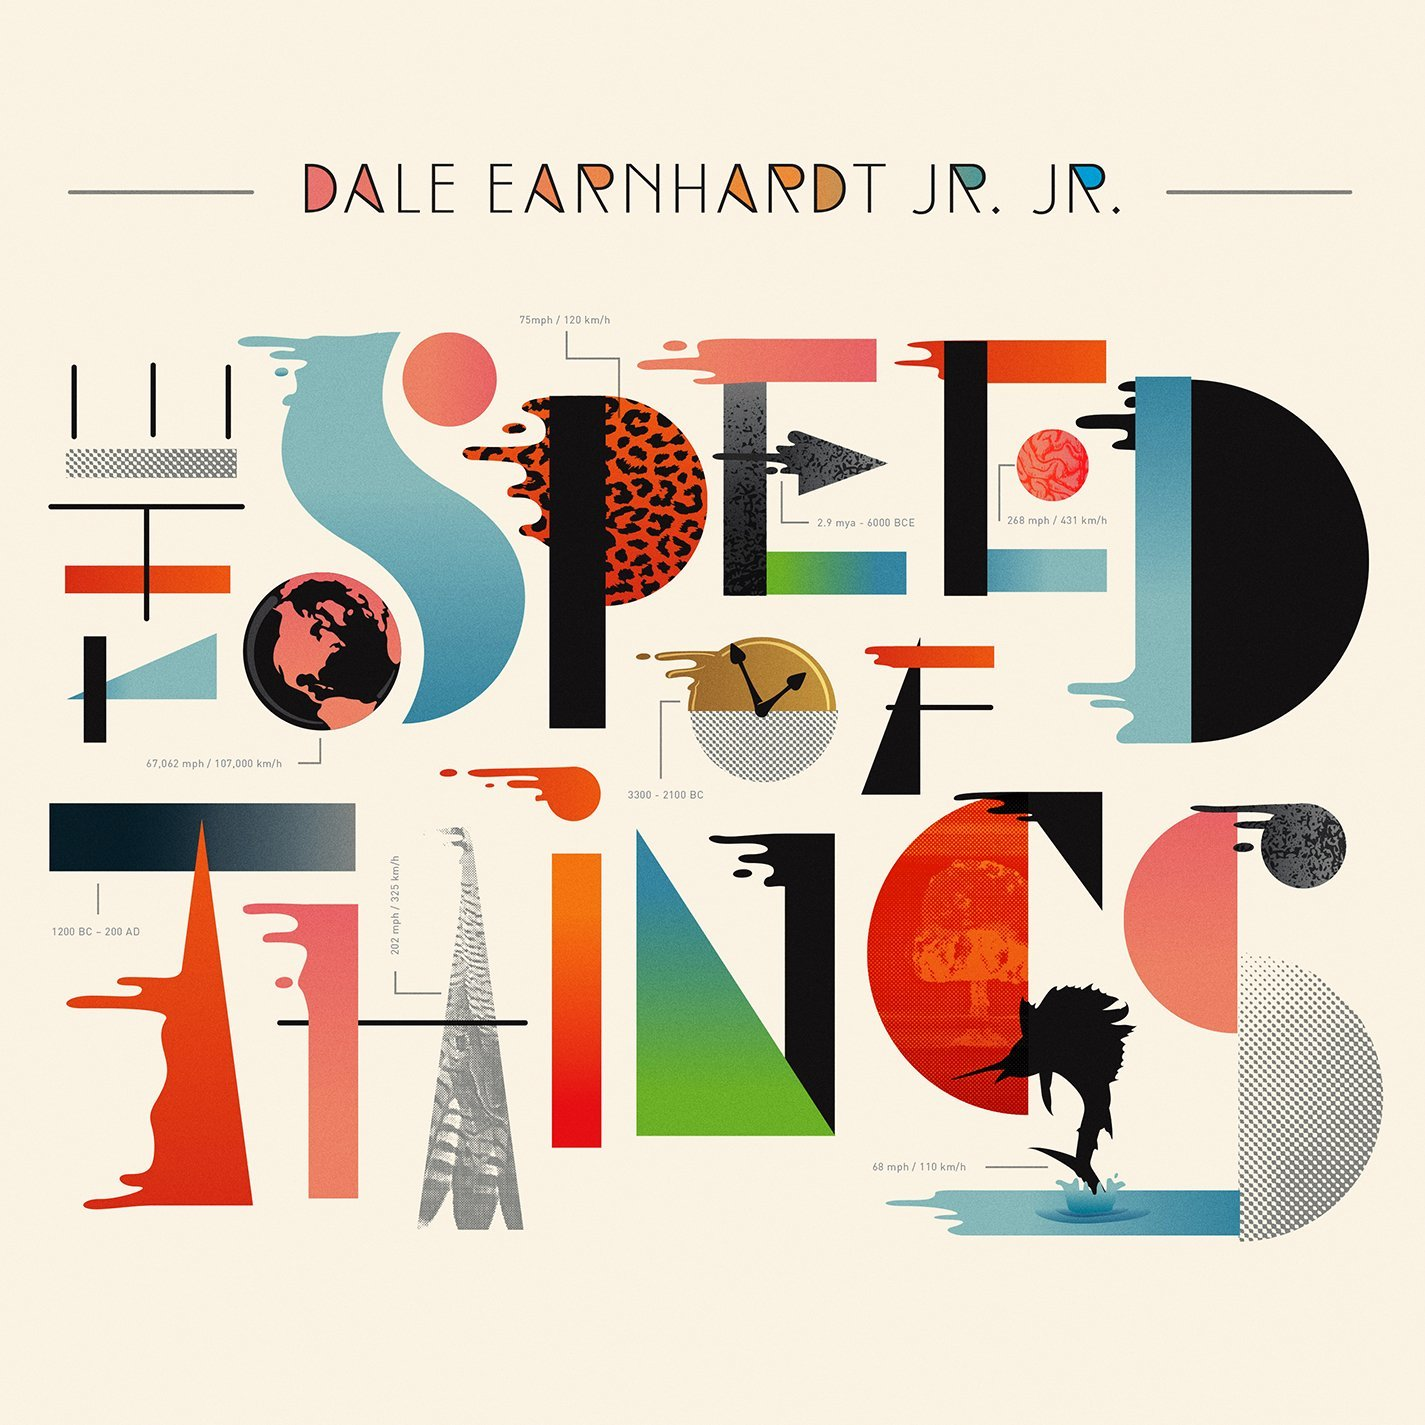 dale earnhardt jr jr - the speed of things 2013